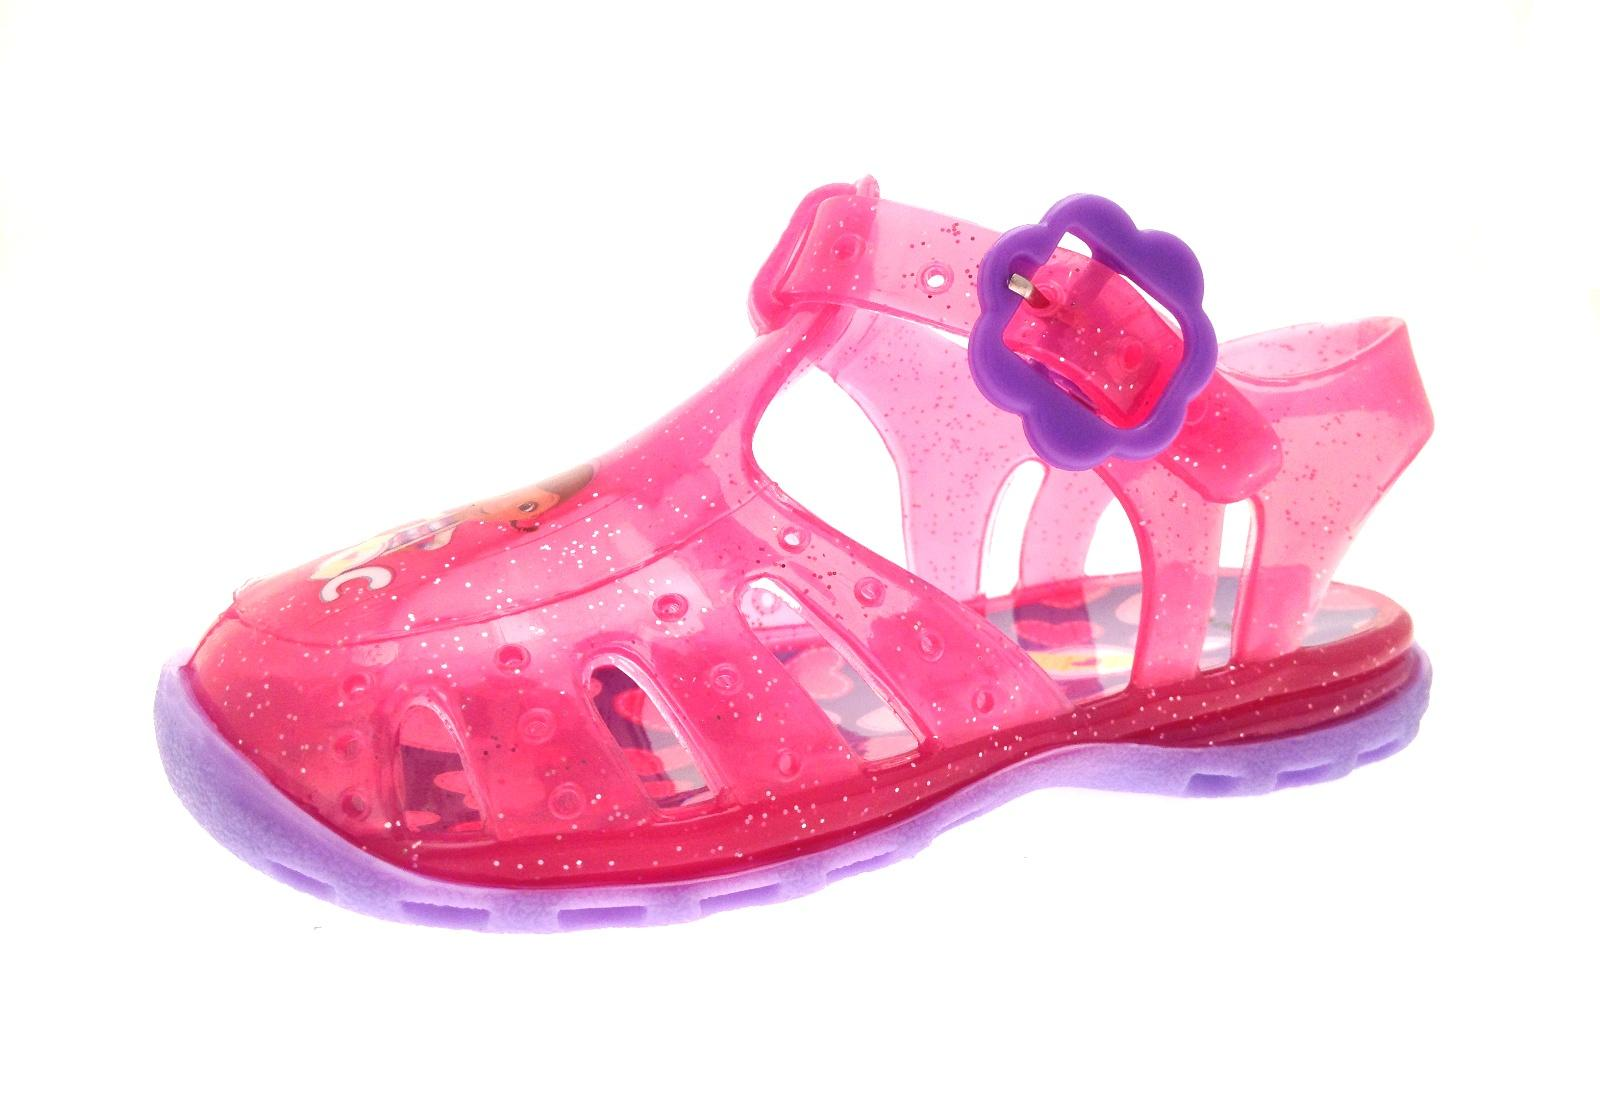 Aug 18,  · The clog-shaped Crocs became kids' summer sandal of choice when they arrived on the scene in and flourished in the children's footwear market in a way not seen since the jelly-shoe .